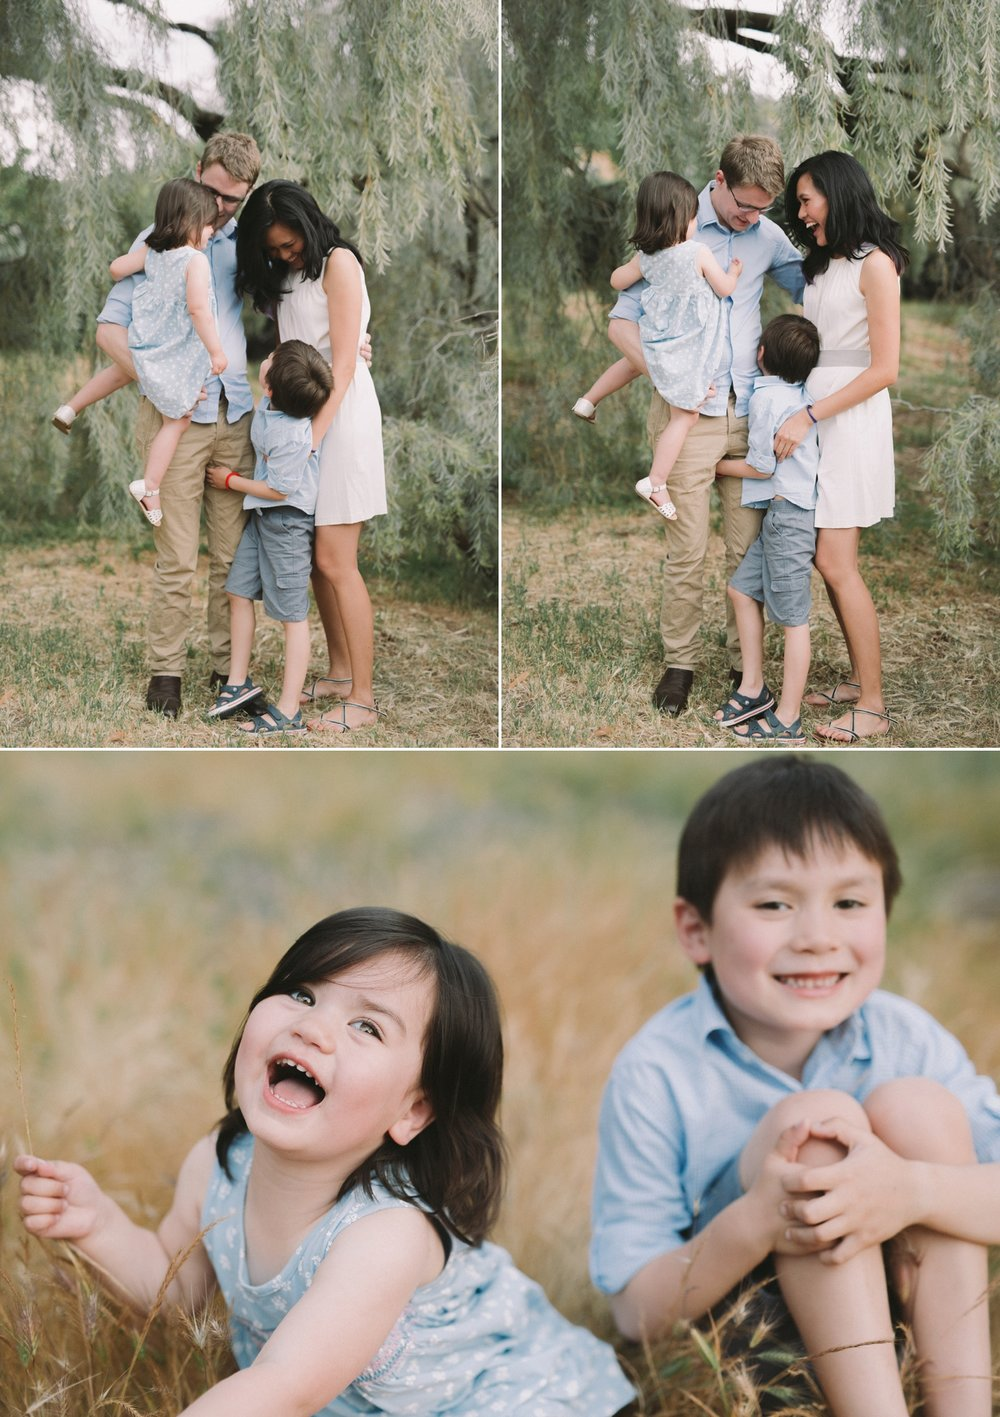 Seto Family - Adelaide Family Photographer - Natural light photographer in Adelaide - Beautiful family photography - www.katherineschultzphotography.com